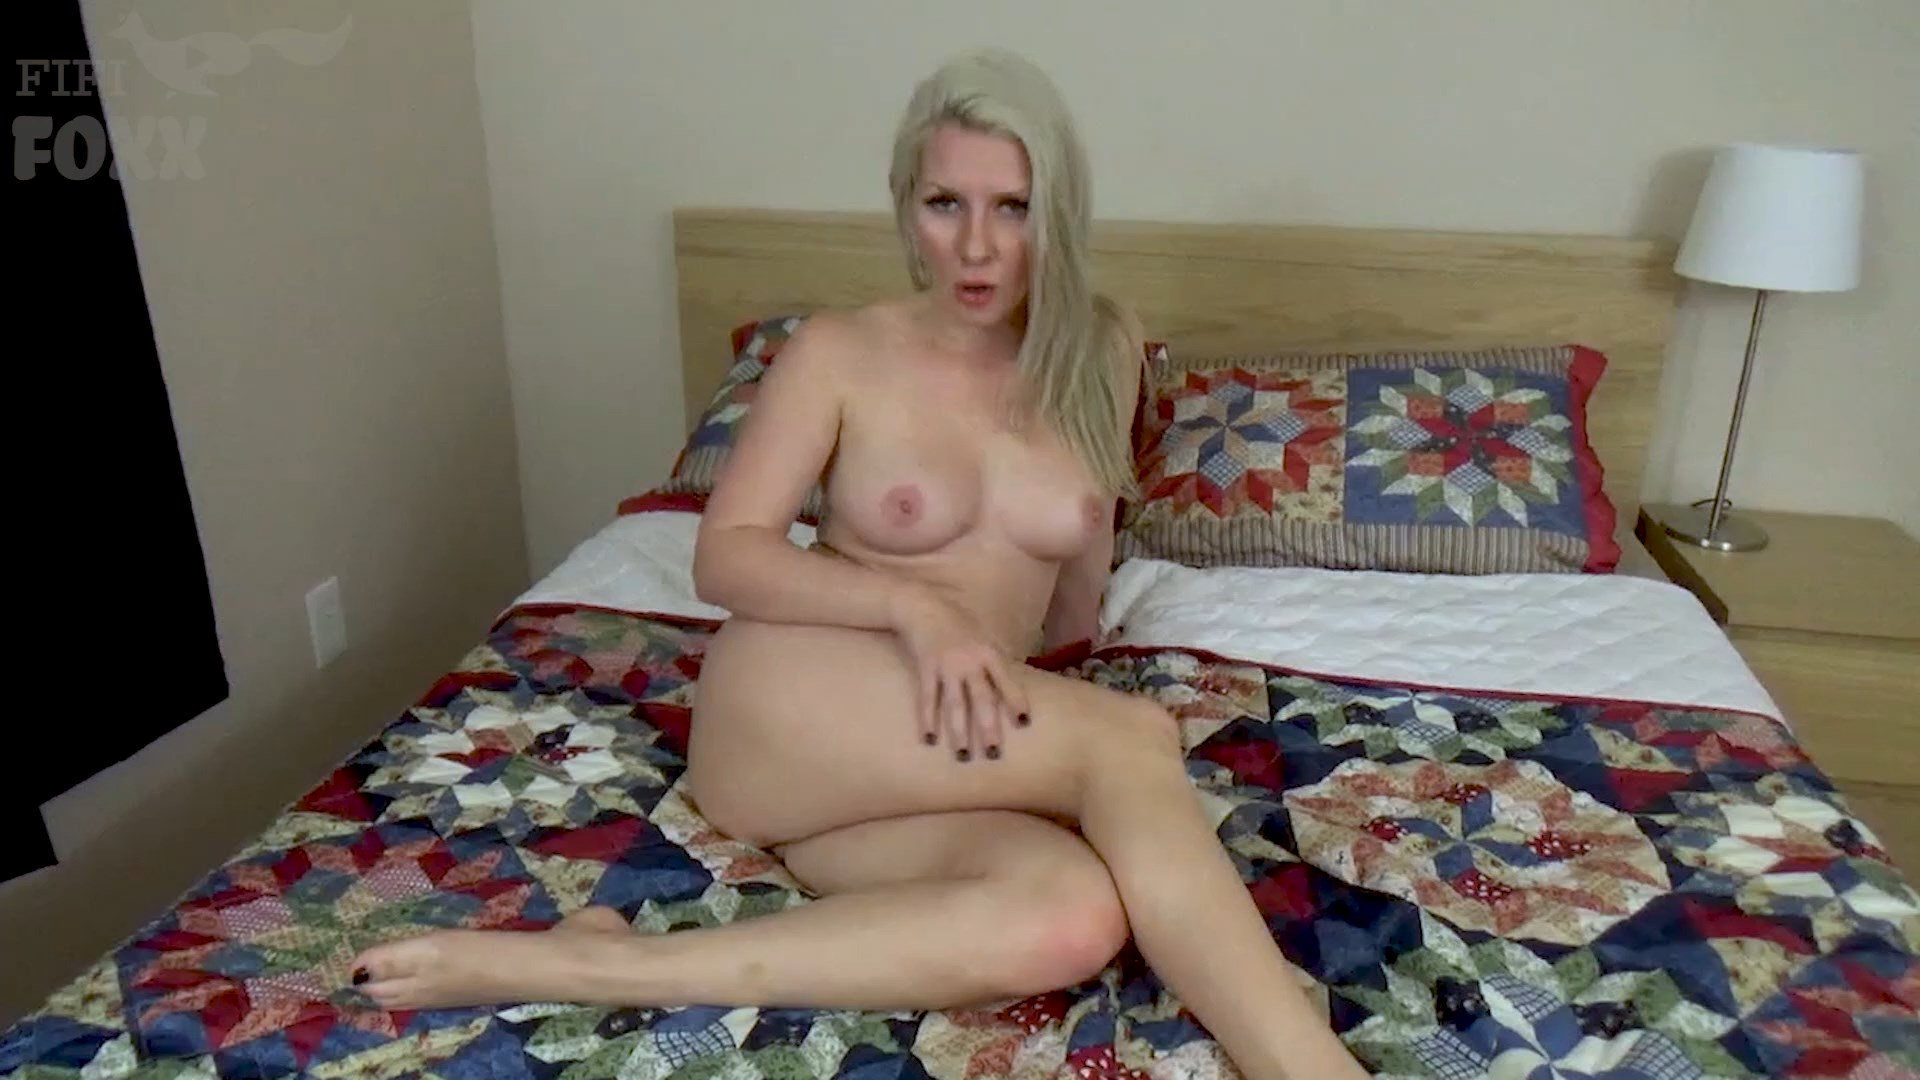 Fifi Foxx Fantasies - Sydney Paige - Son's Obsession with Mommy's Butt - Ass Sniffing, Licking, Fingering, & Anal Sex, POV - HD 1080p